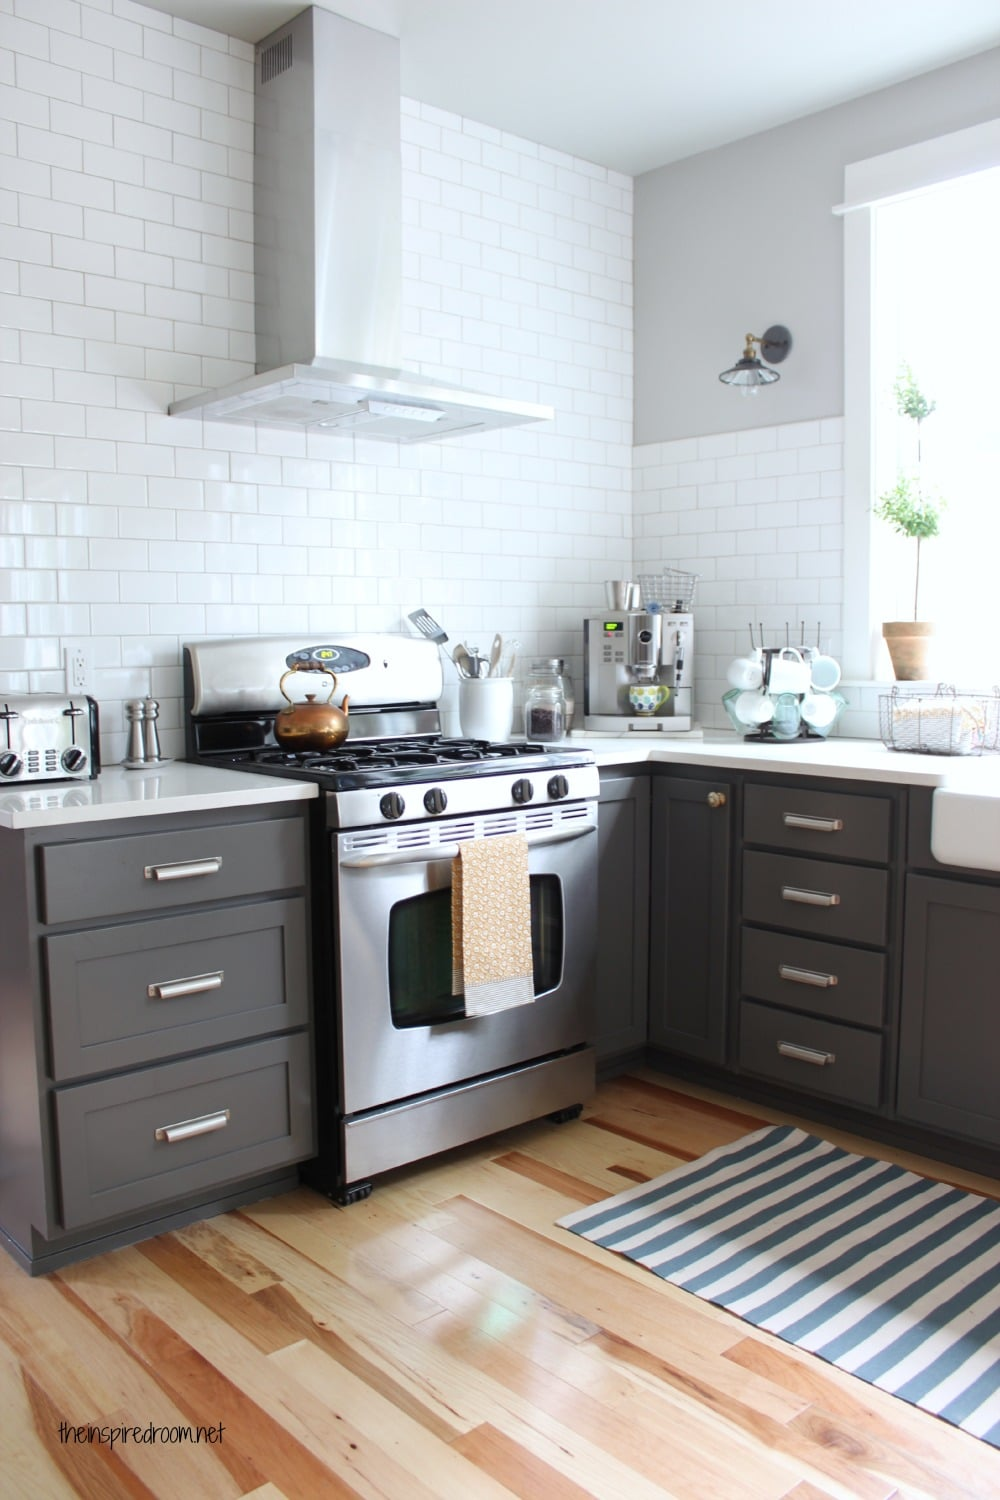 Kitchen Cabinet Colors Before After The Inspired Room - Gray kitchen units